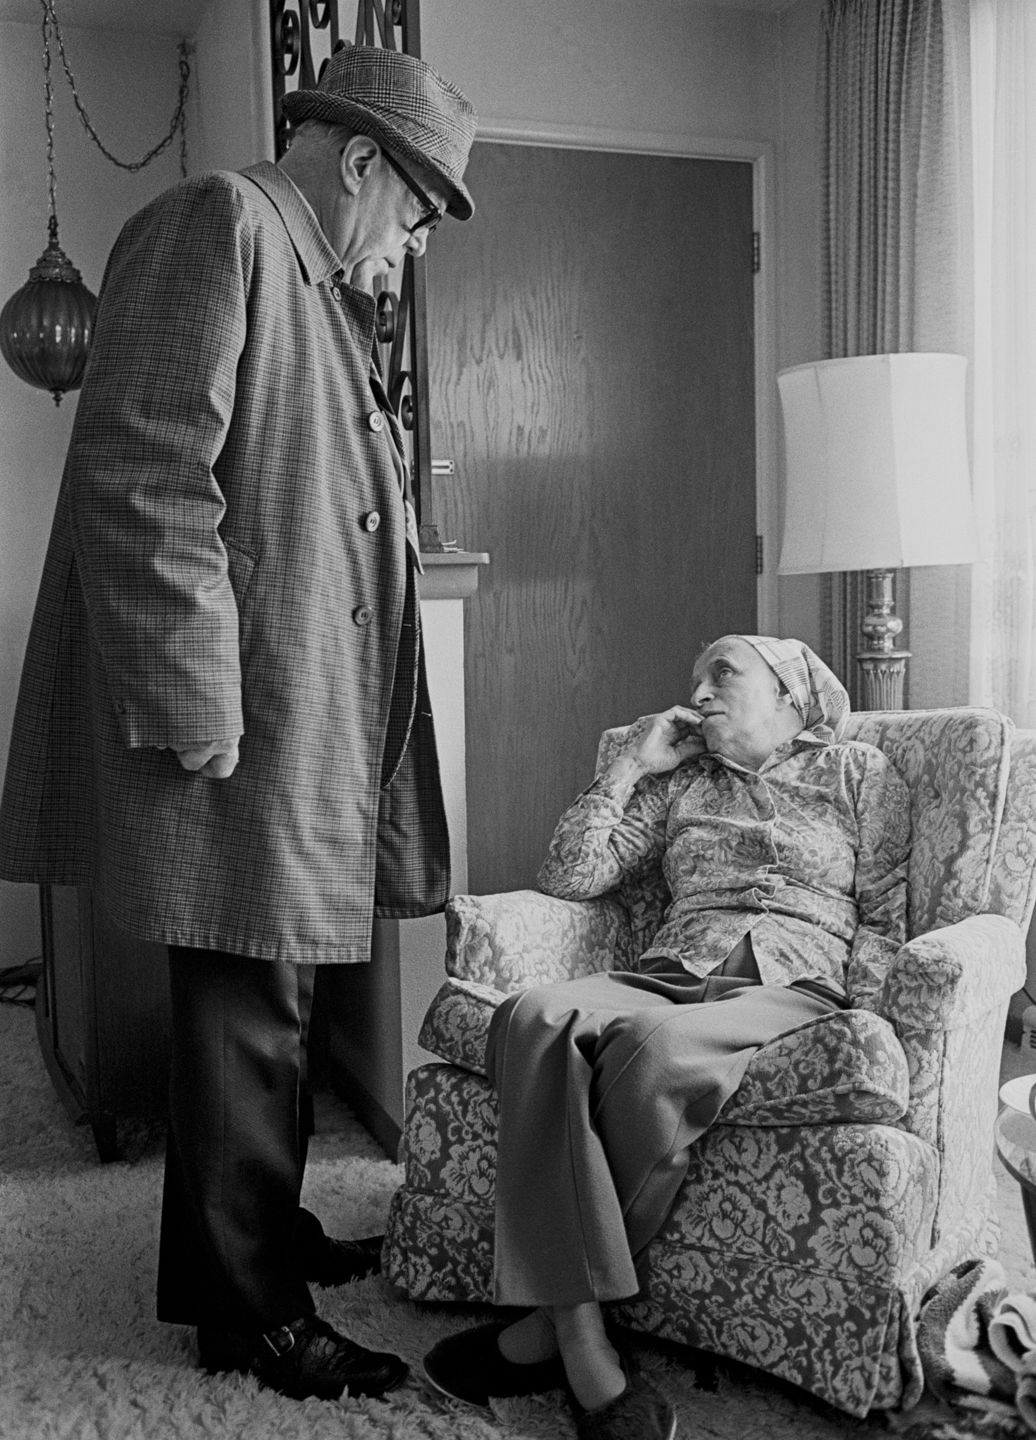 My father would always check in with mom before leaving for his office, a familiar scene when I was home visiting. I like the way she looks at him – with a gaze and knowledge that perhaps transcends the issue at hand.